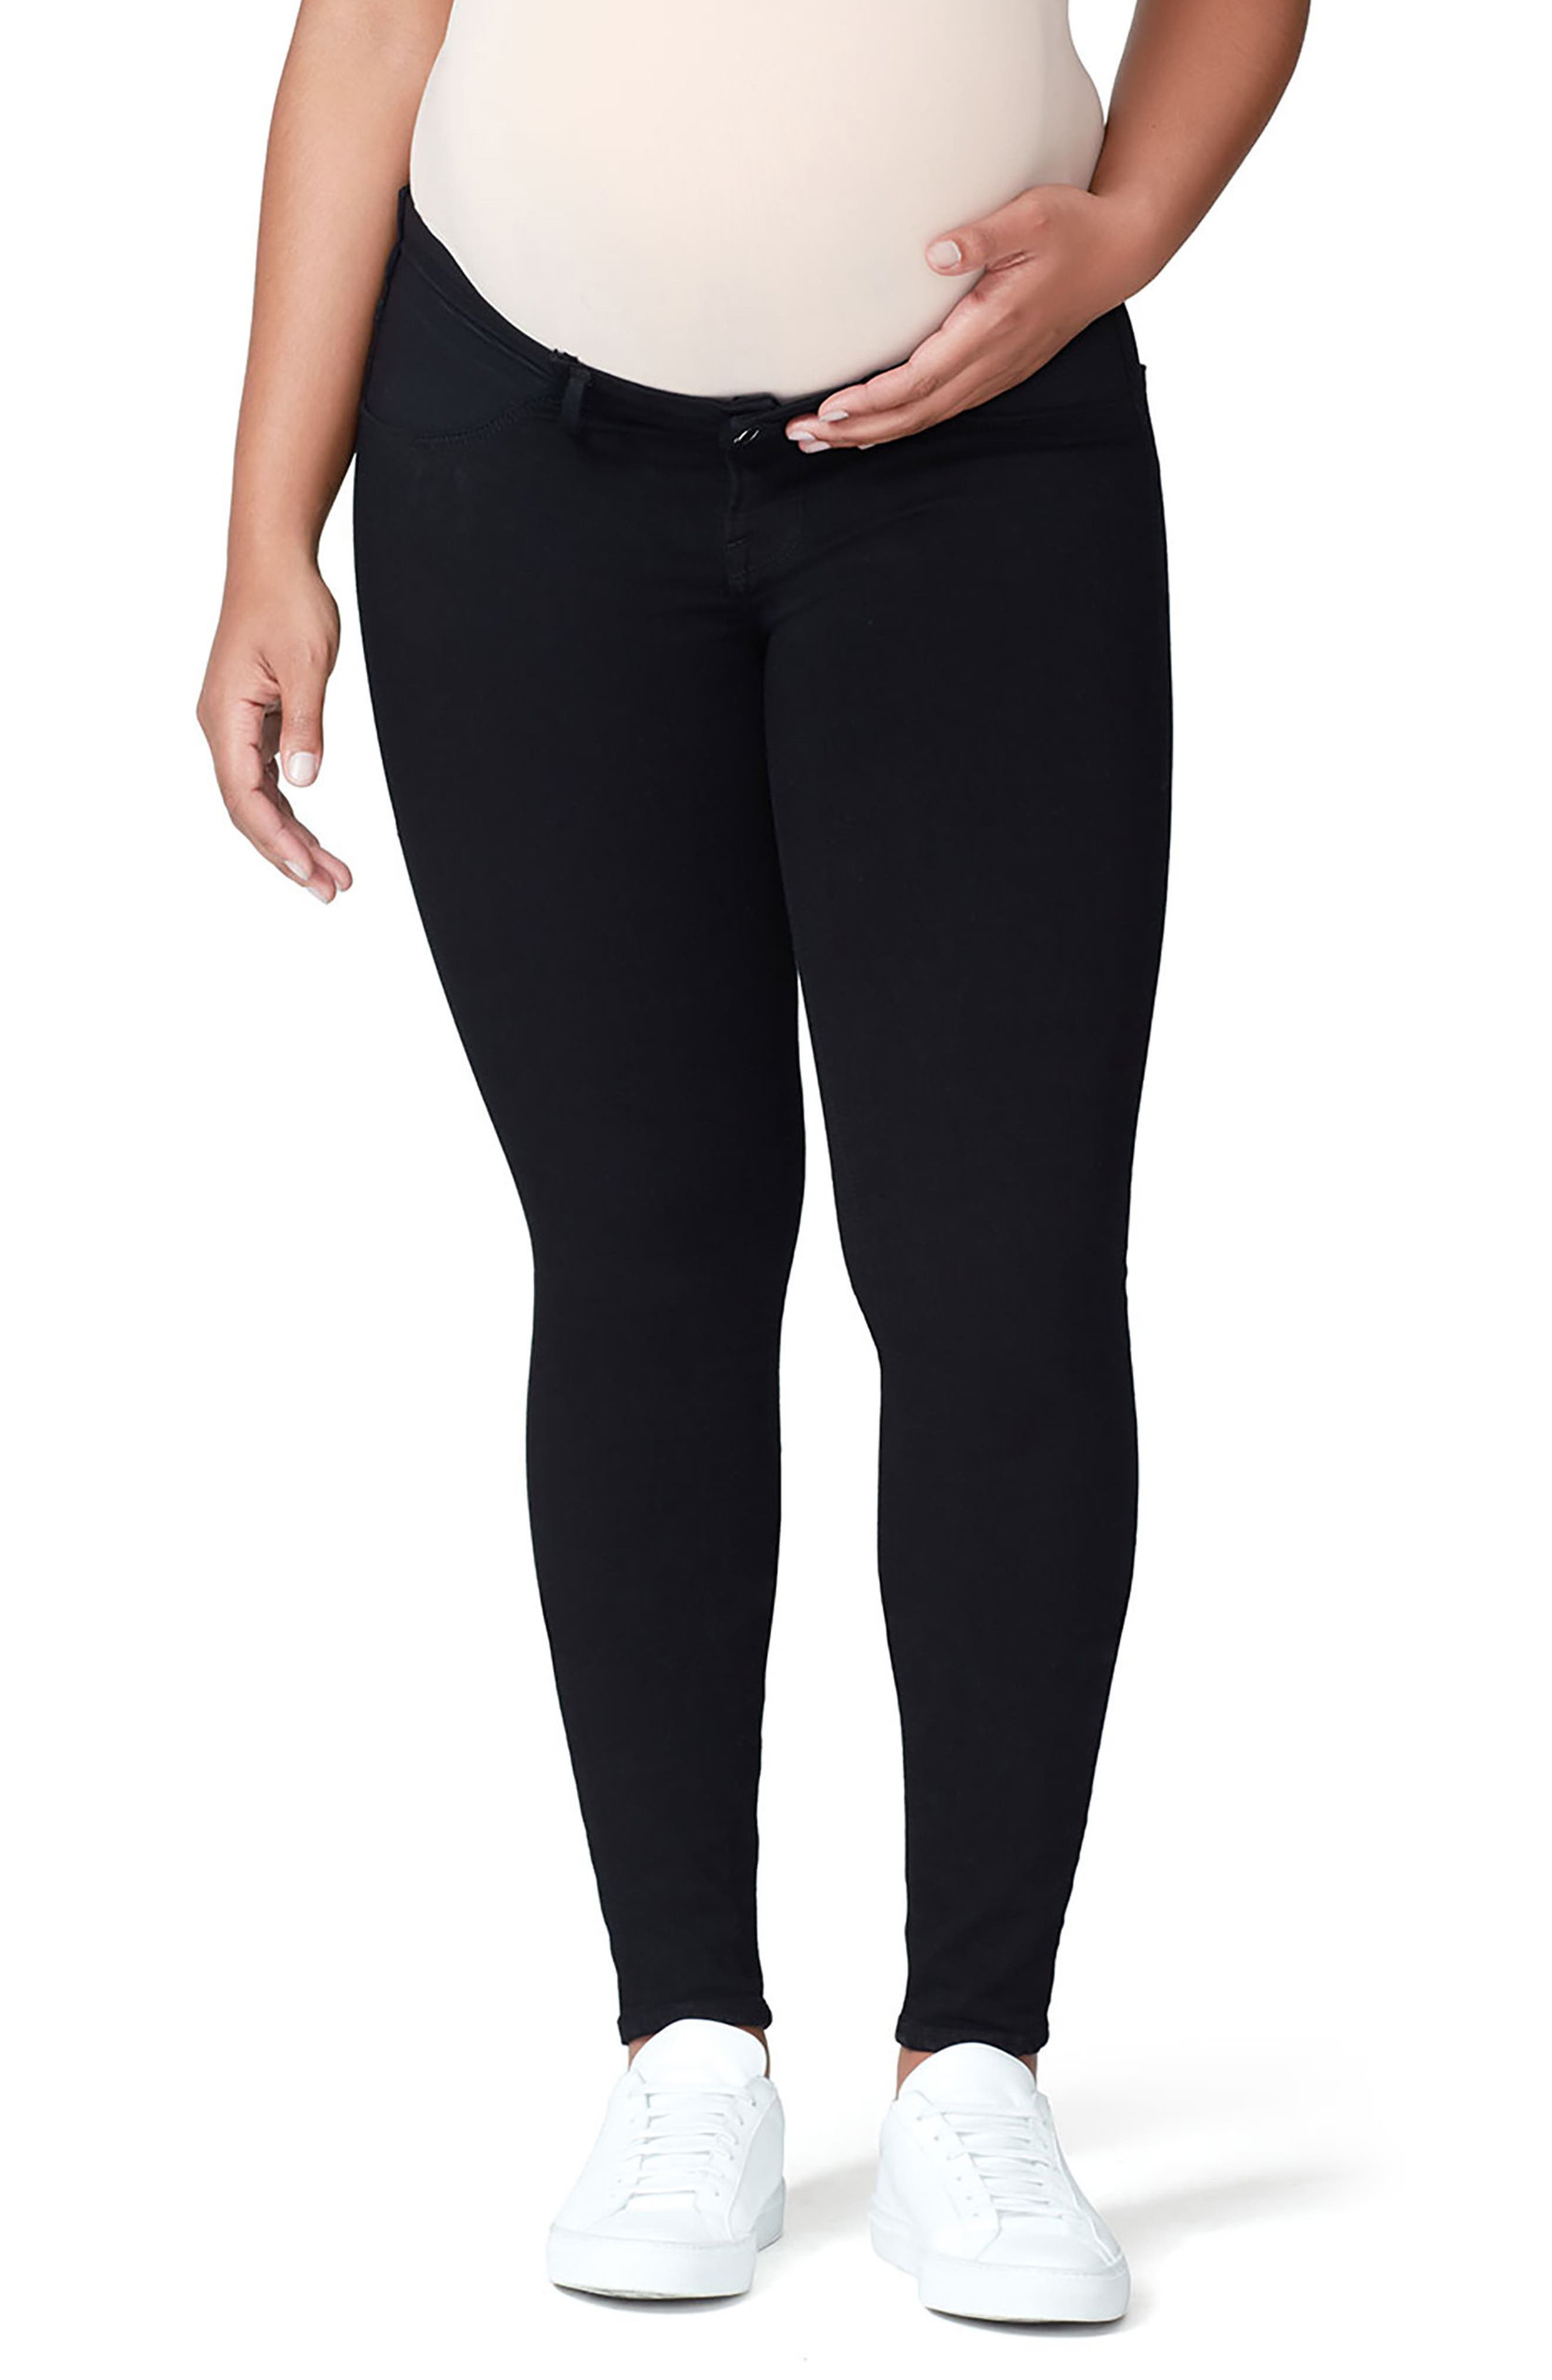 Good Mama The Honeymoon Low Rise Maternity Skinny Jeans,                         Main,                         color, Black